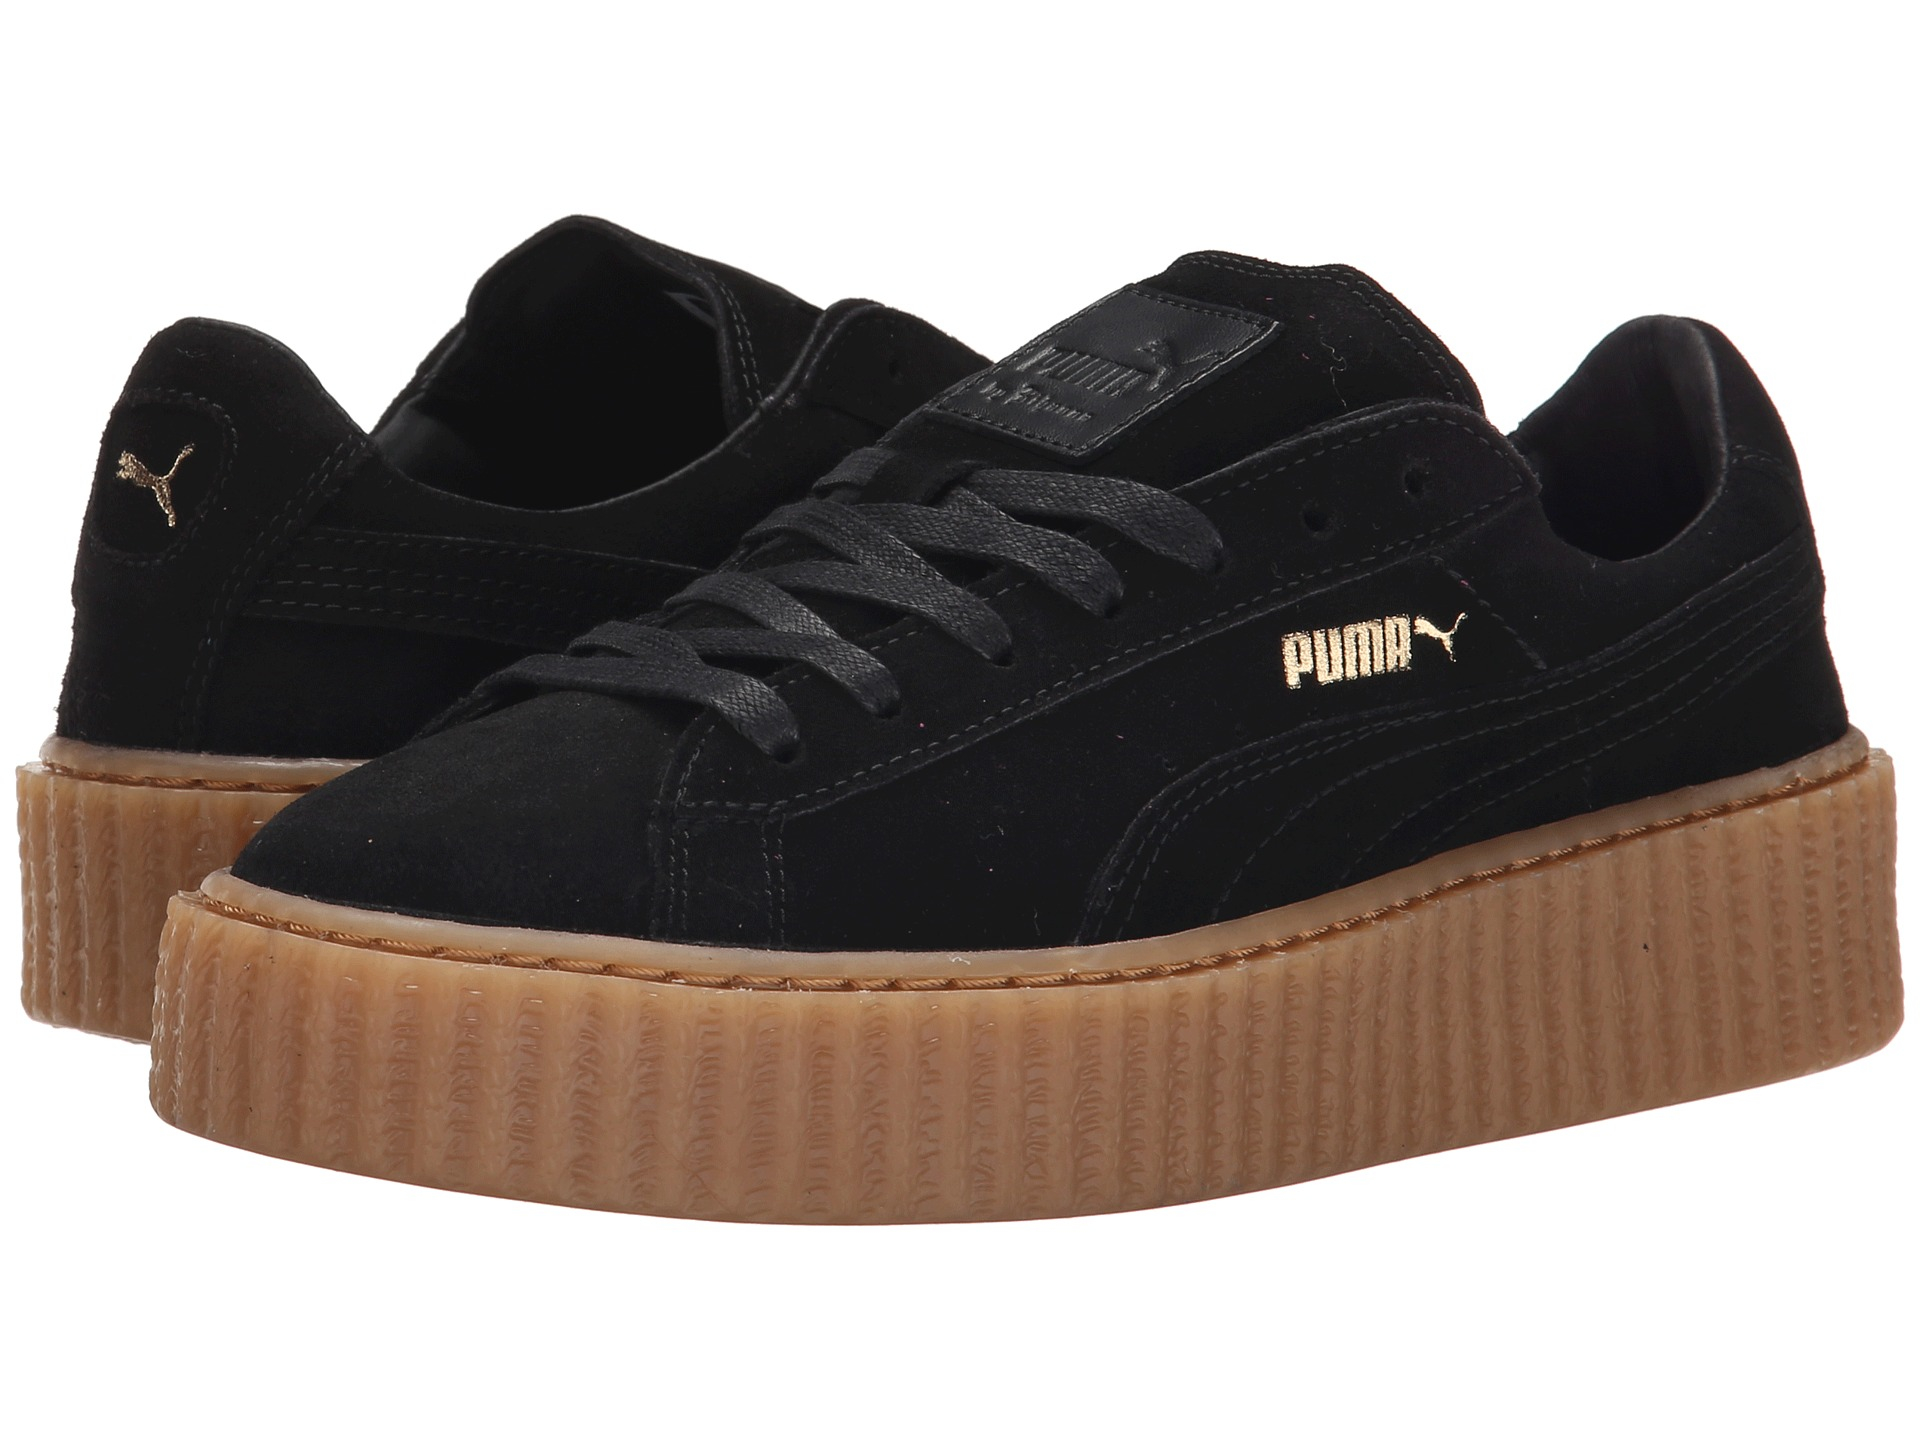 puma rihanna x suede creepers in black lyst. Black Bedroom Furniture Sets. Home Design Ideas